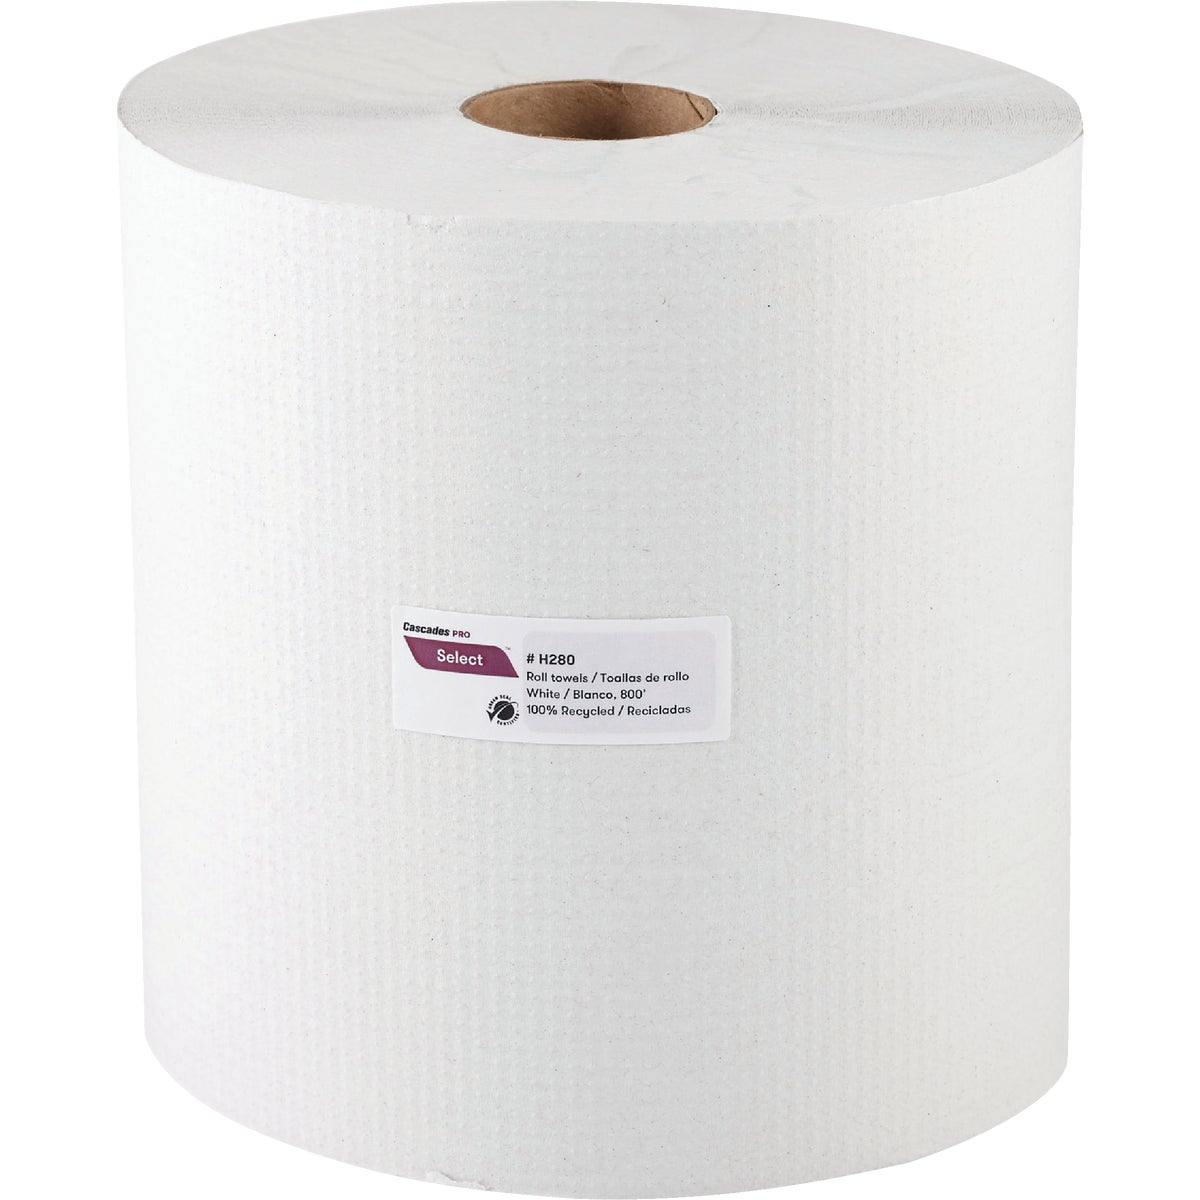 700' WHT HARD ROLL TOWEL - 75009530 by Bunzl USA